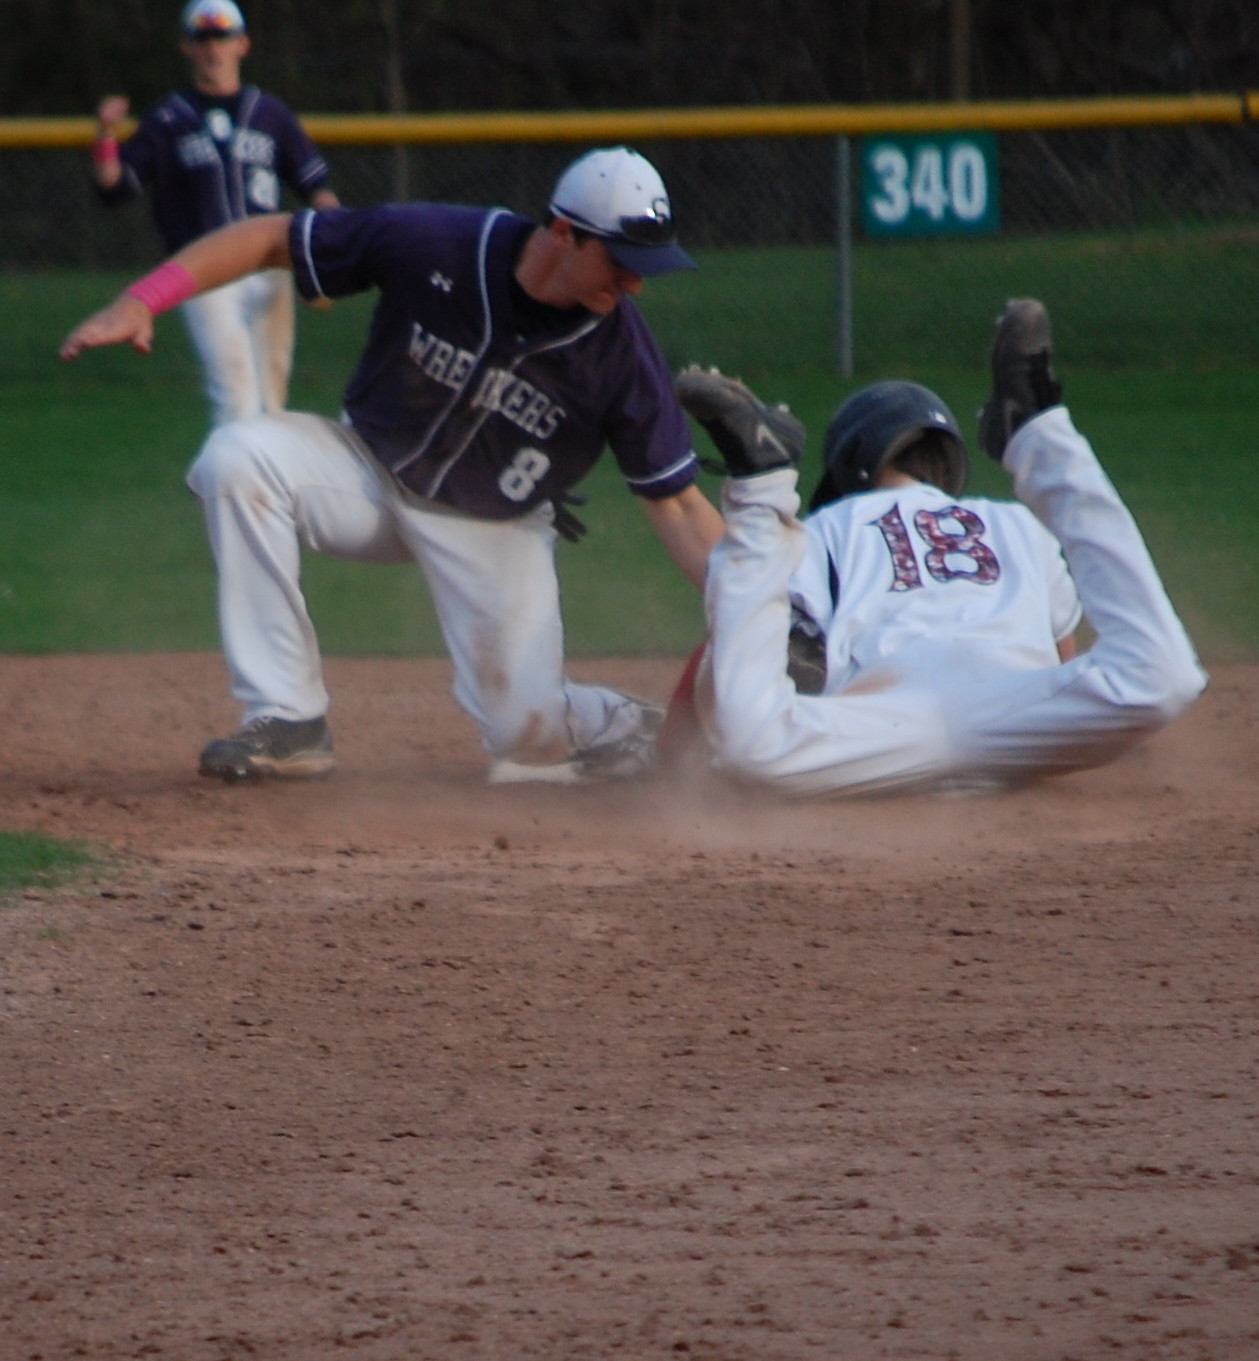 Adam Dulsky nails New Canaan baserunner trying to steal, Sam Ellinwood applies the tag!